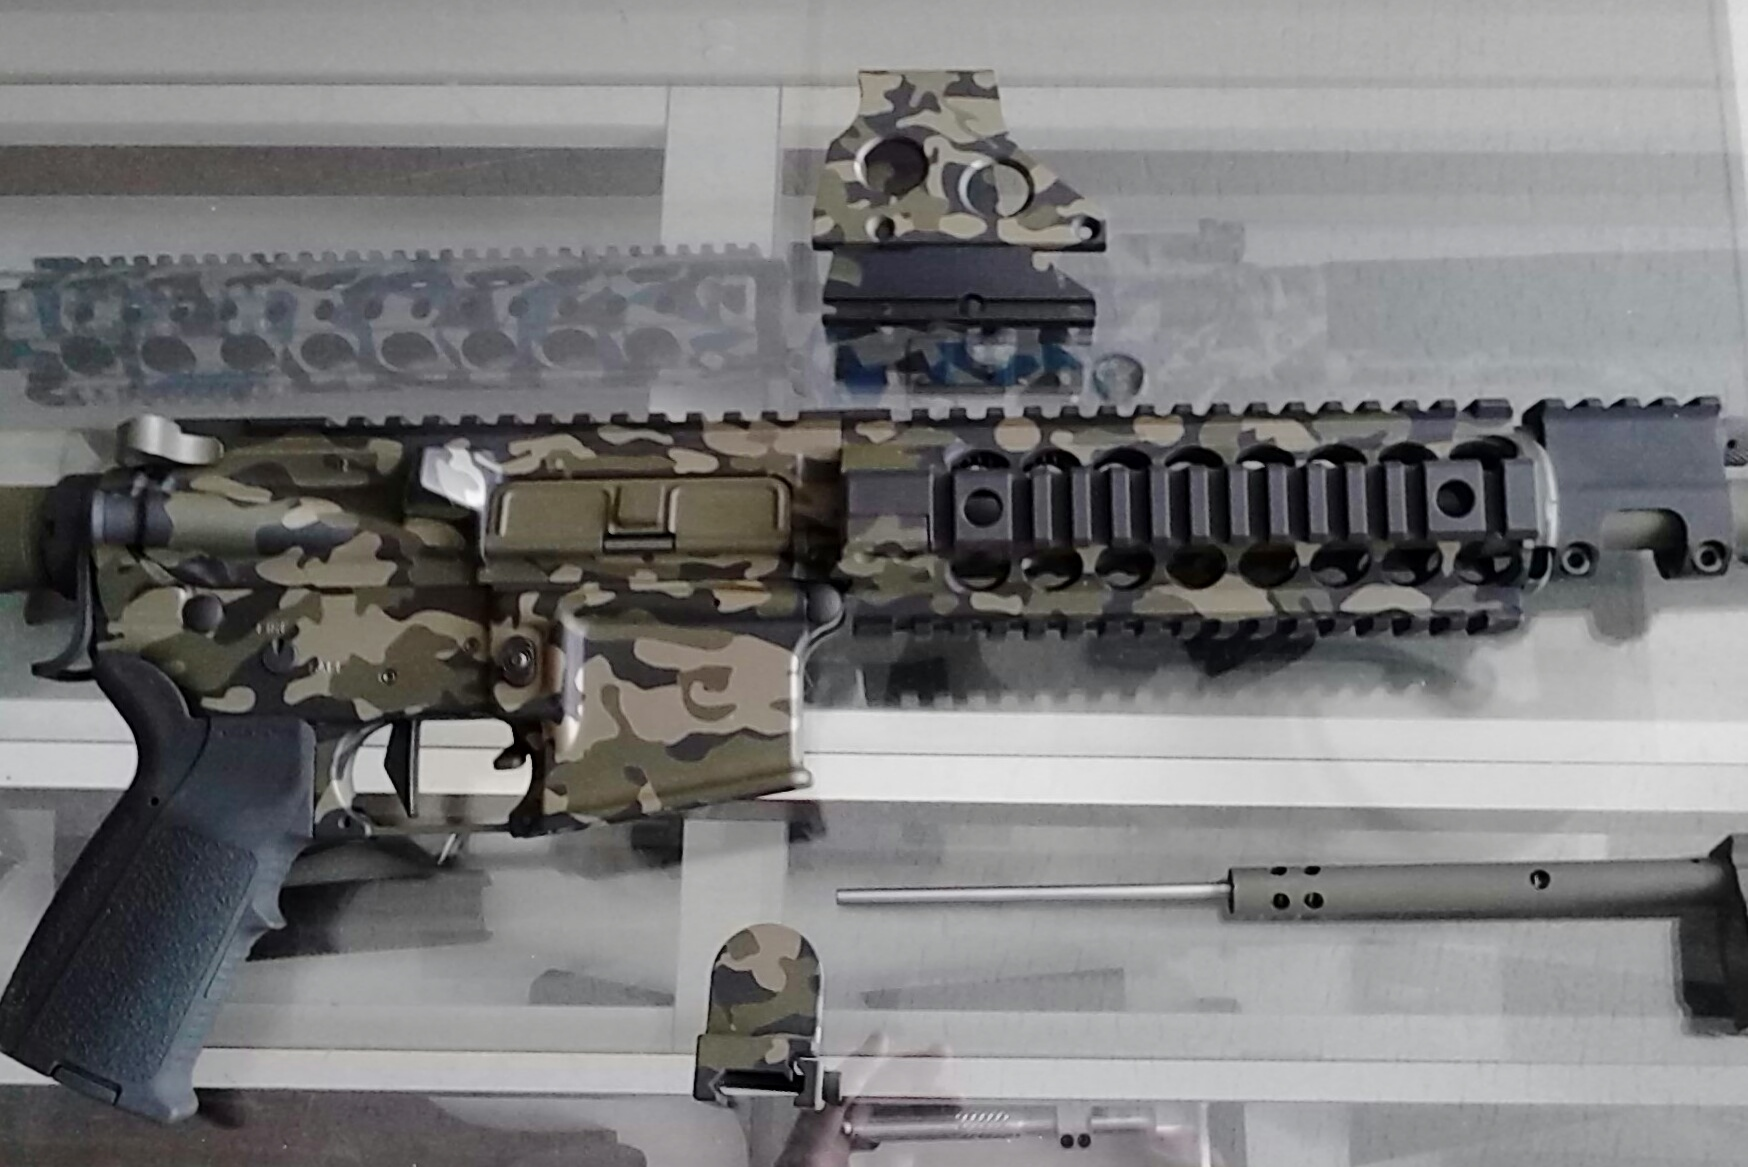 Recent three paint Cerakote camo job on an AR-15